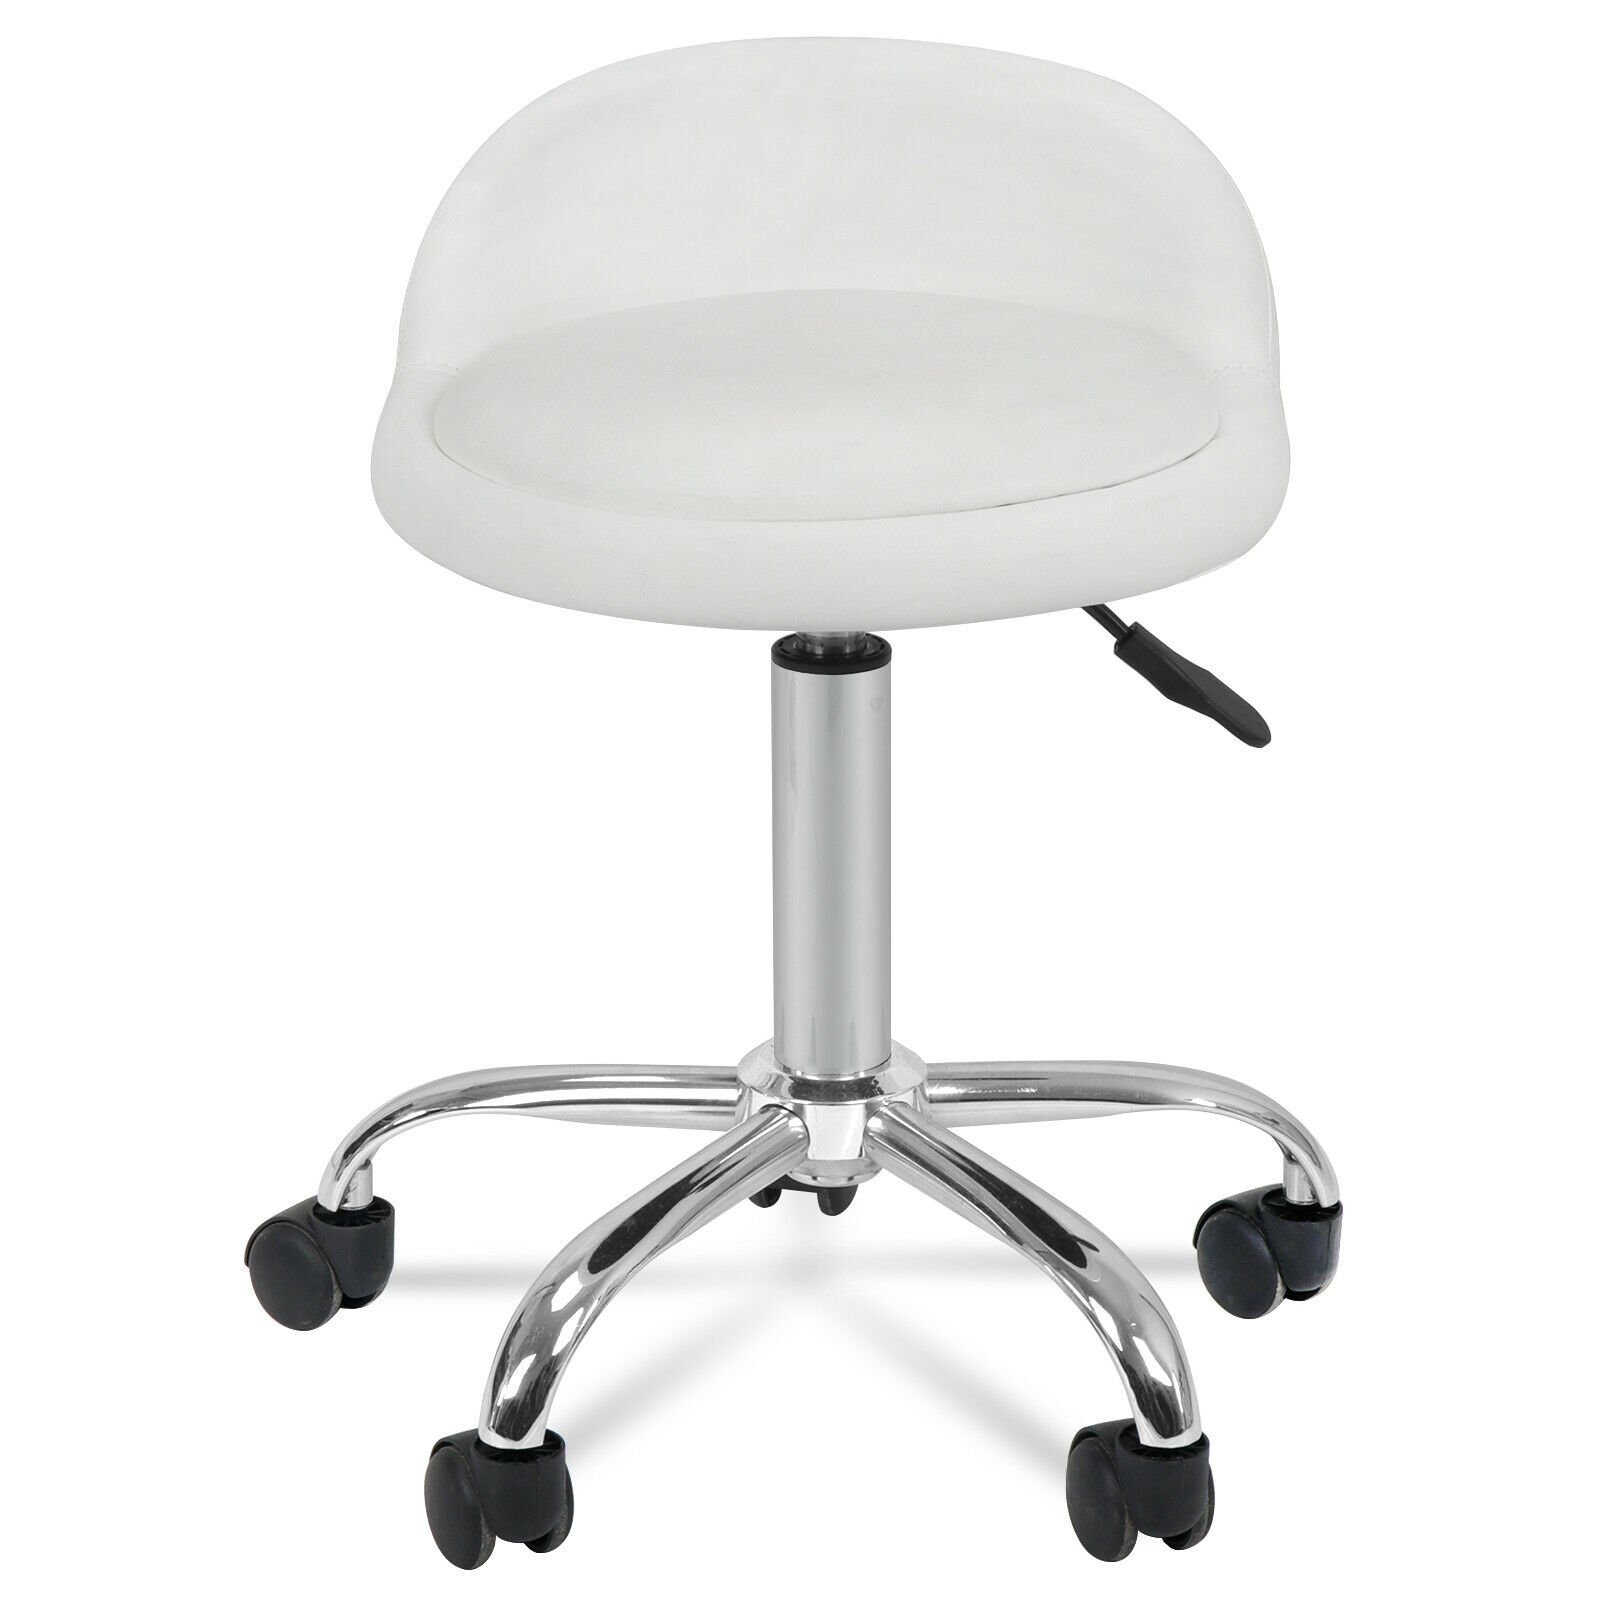 Spa Salon Stool with Back Rest Hydraulic Adjustable Height 5